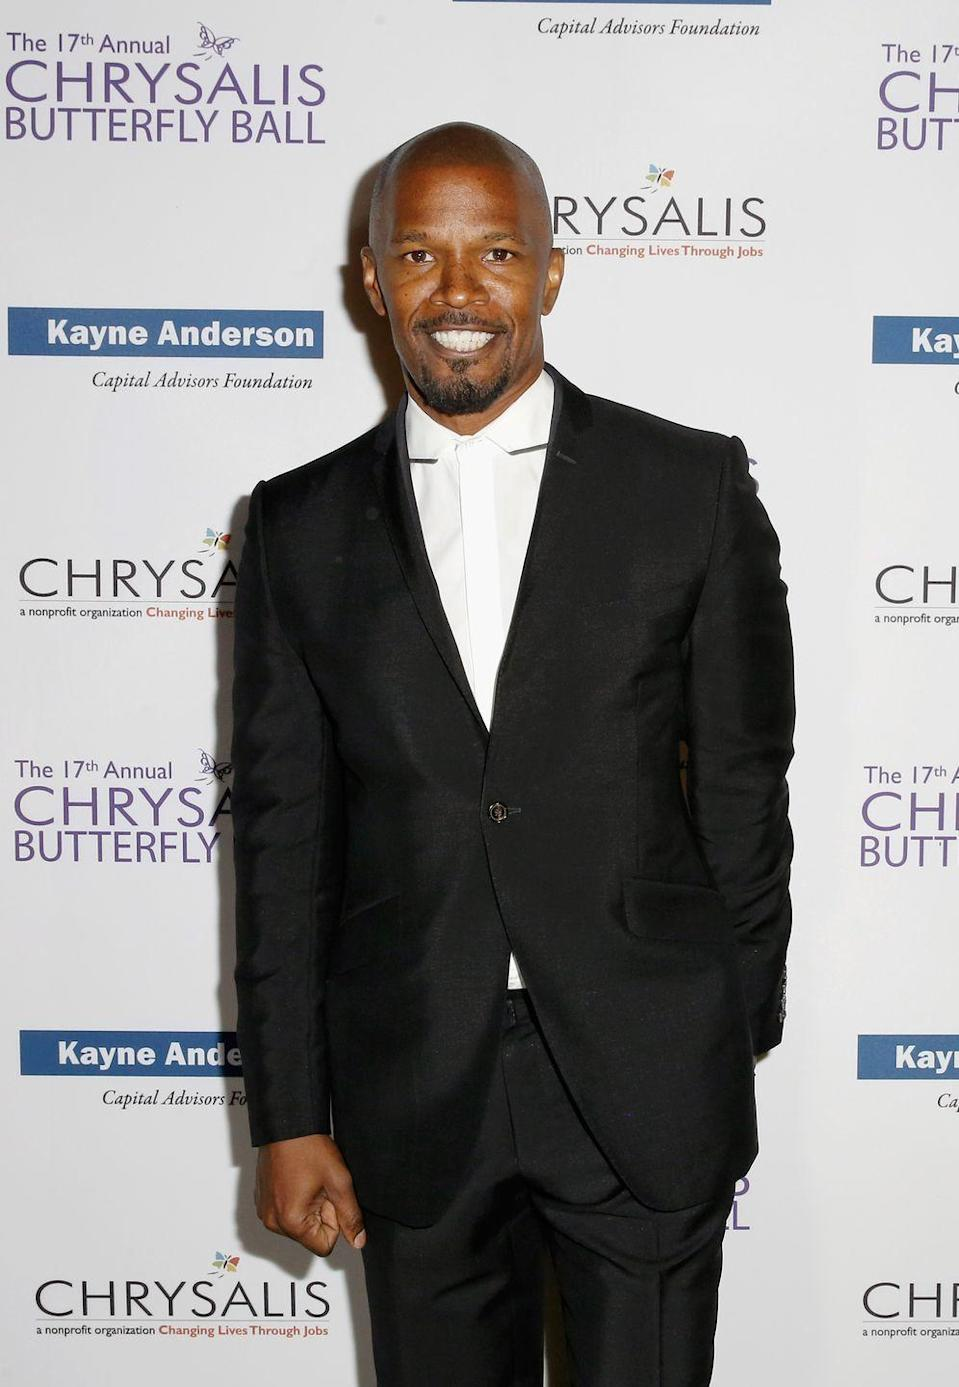 """<p>Jamie Foxx has many talents, and music is definitely one of them. Perhaps you've heard of a little Kanye West song called """"Gold Digger?"""" Well, Jamie was featured. But Jamie didn't have to piggyback off Kanye's success. Shortly after winning an Oscar for his portrayal of Ray Charles in <em>Ray</em>, Jamie released his debut album, <a href=""""https://open.spotify.com/album/045D1HbNHv4R31D9vkL8Ve?si=o3nOMDI7R7OQQKzc3IoHuQ"""" rel=""""nofollow noopener"""" target=""""_blank"""" data-ylk=""""slk:Unpredictable"""" class=""""link rapid-noclick-resp""""><em>Unpredictable</em></a>. Throughout his music career, Jamie has earned <a href=""""https://www.billboard.com/music/jamie-foxx/chart-history"""" rel=""""nofollow noopener"""" target=""""_blank"""" data-ylk=""""slk:four top 10 albums and four top 10 hits"""" class=""""link rapid-noclick-resp"""">four top 10 albums and four top 10 hits</a>.</p>"""